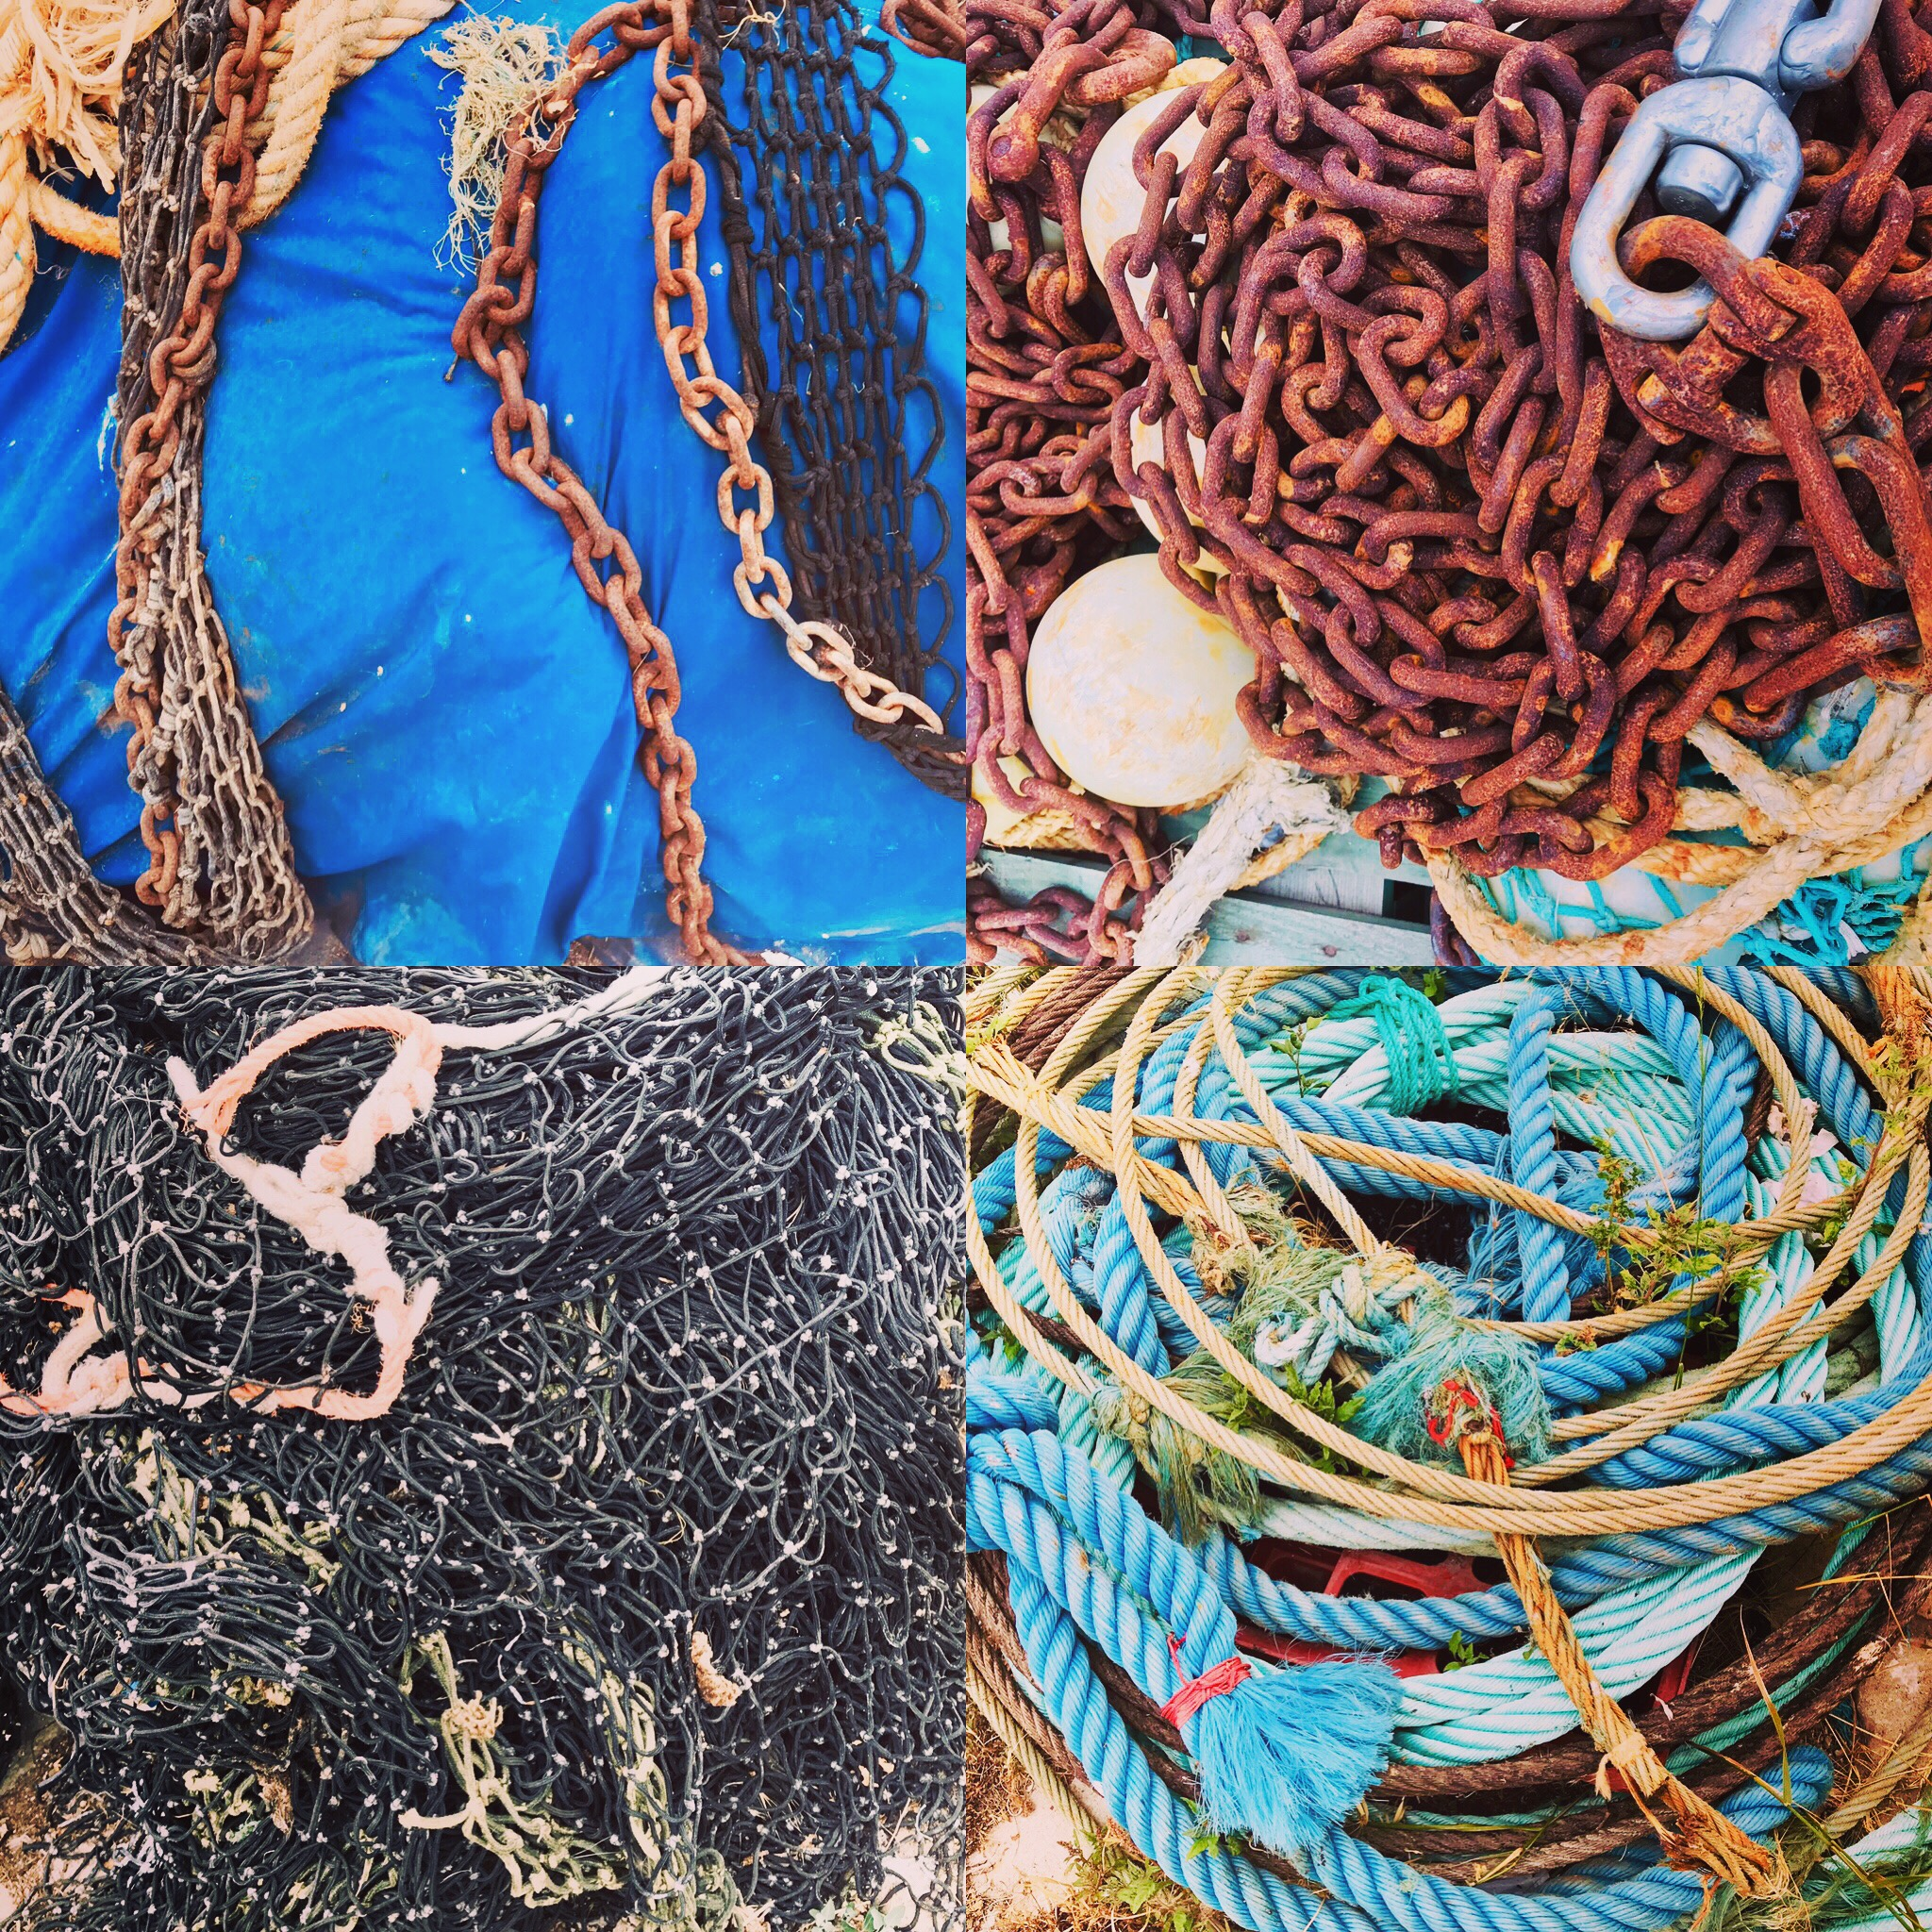 Close-ups of common sites at one of the many fishing docks.